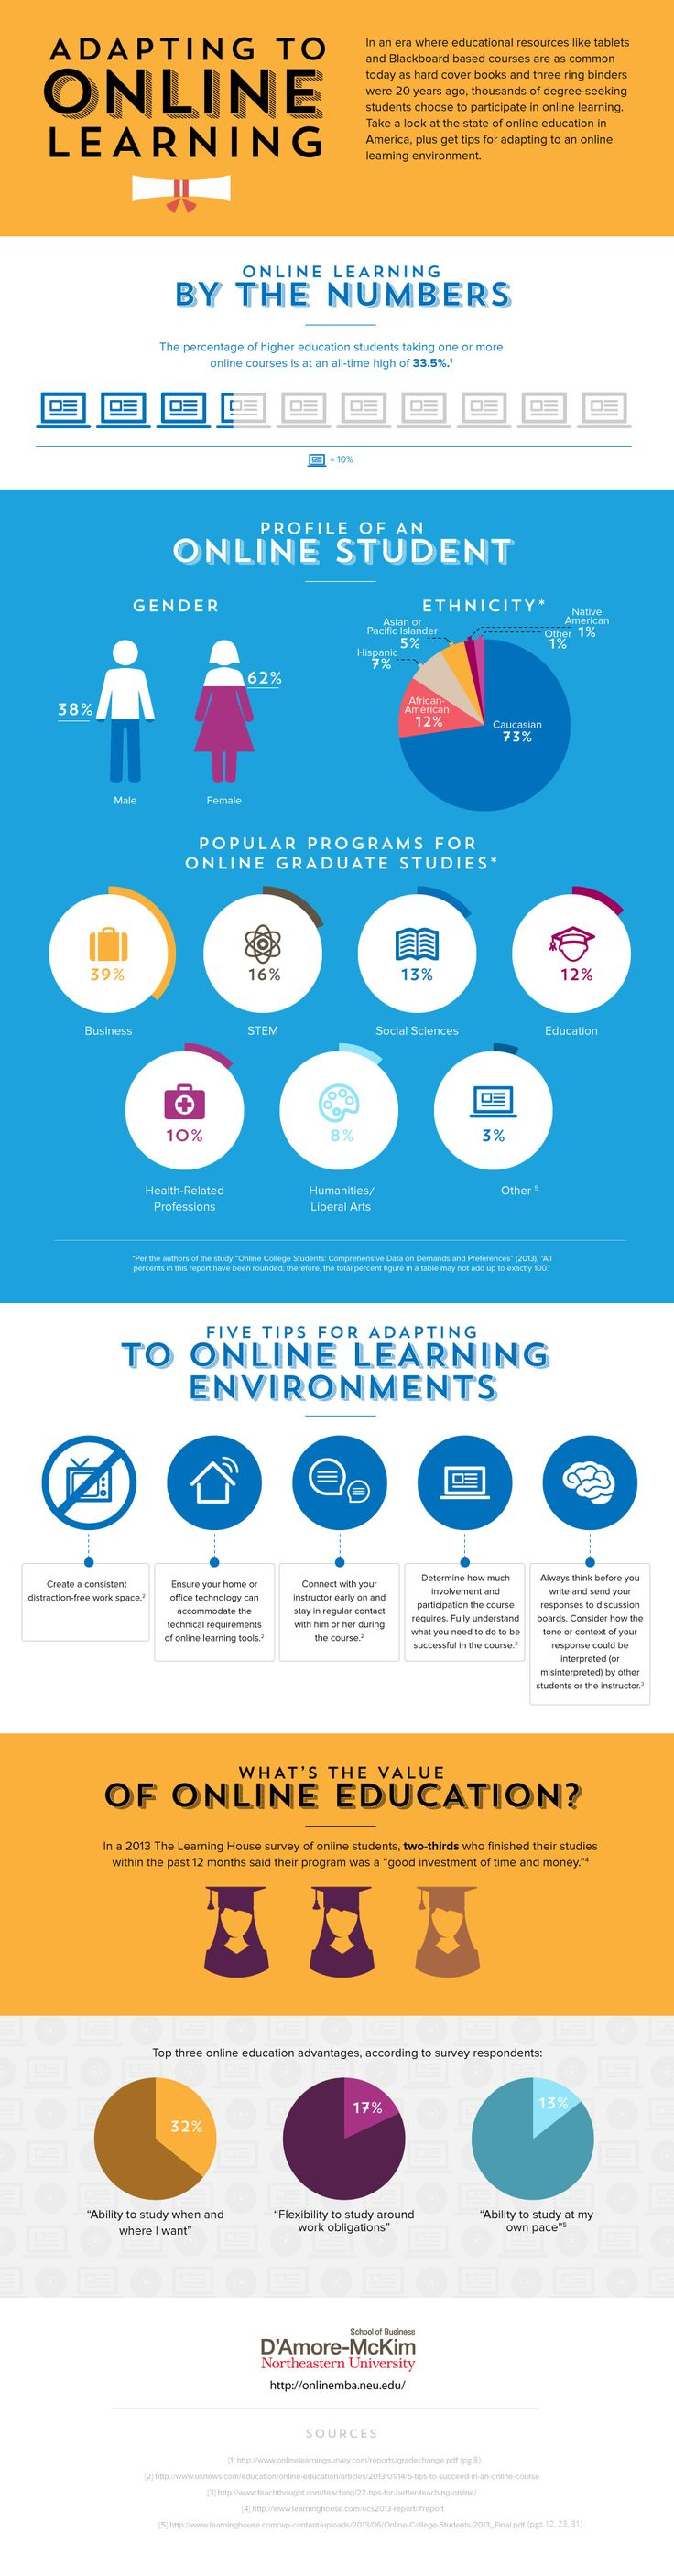 Adapting to Online Learning